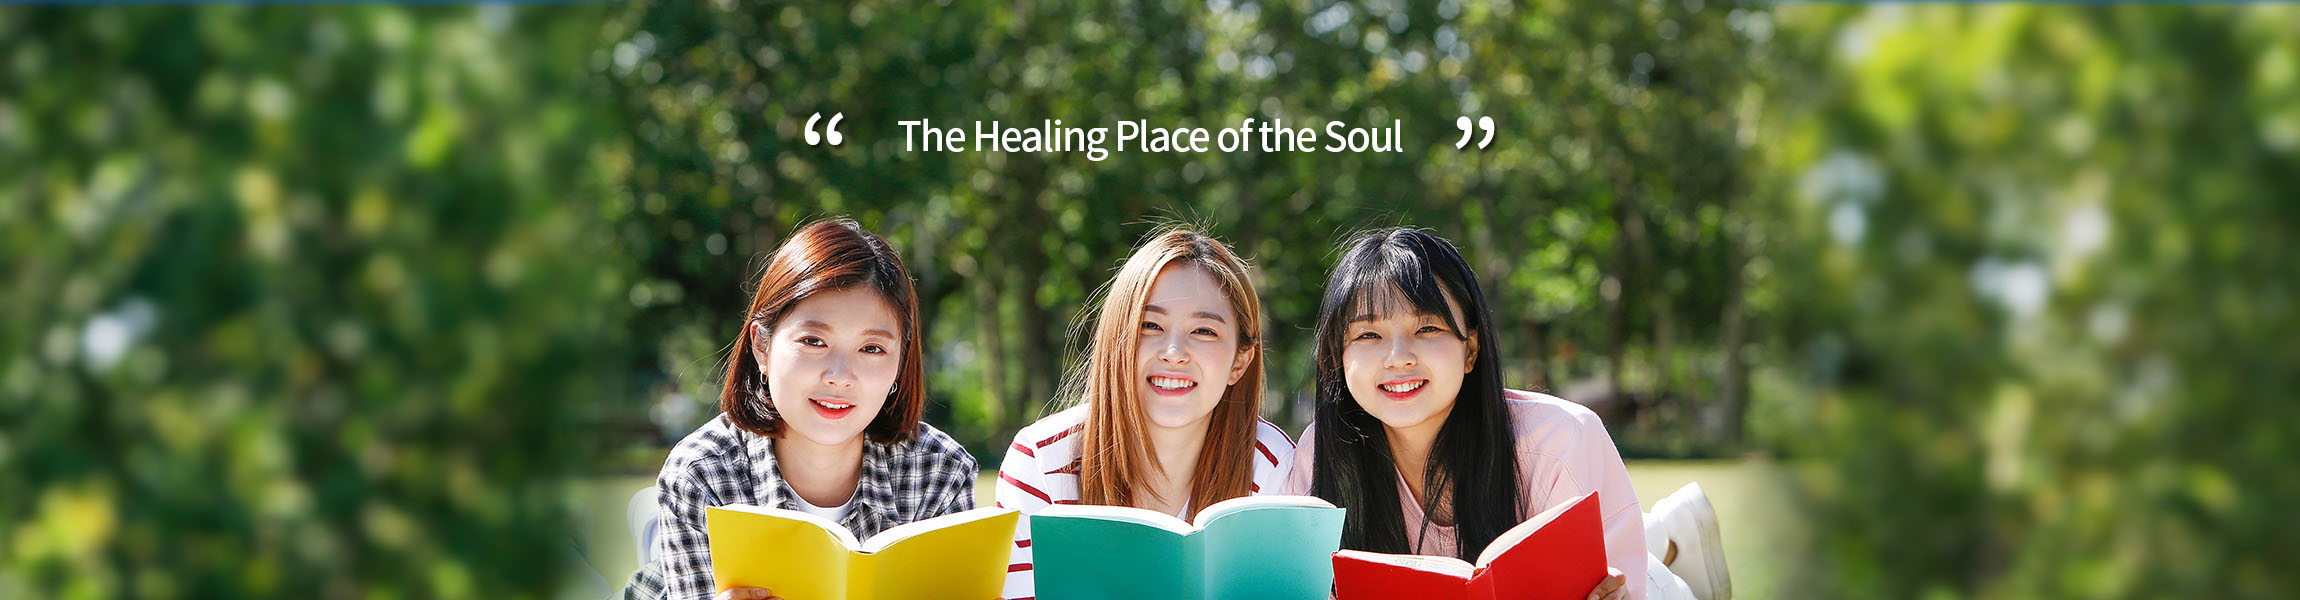 The Healing Place of the Soul